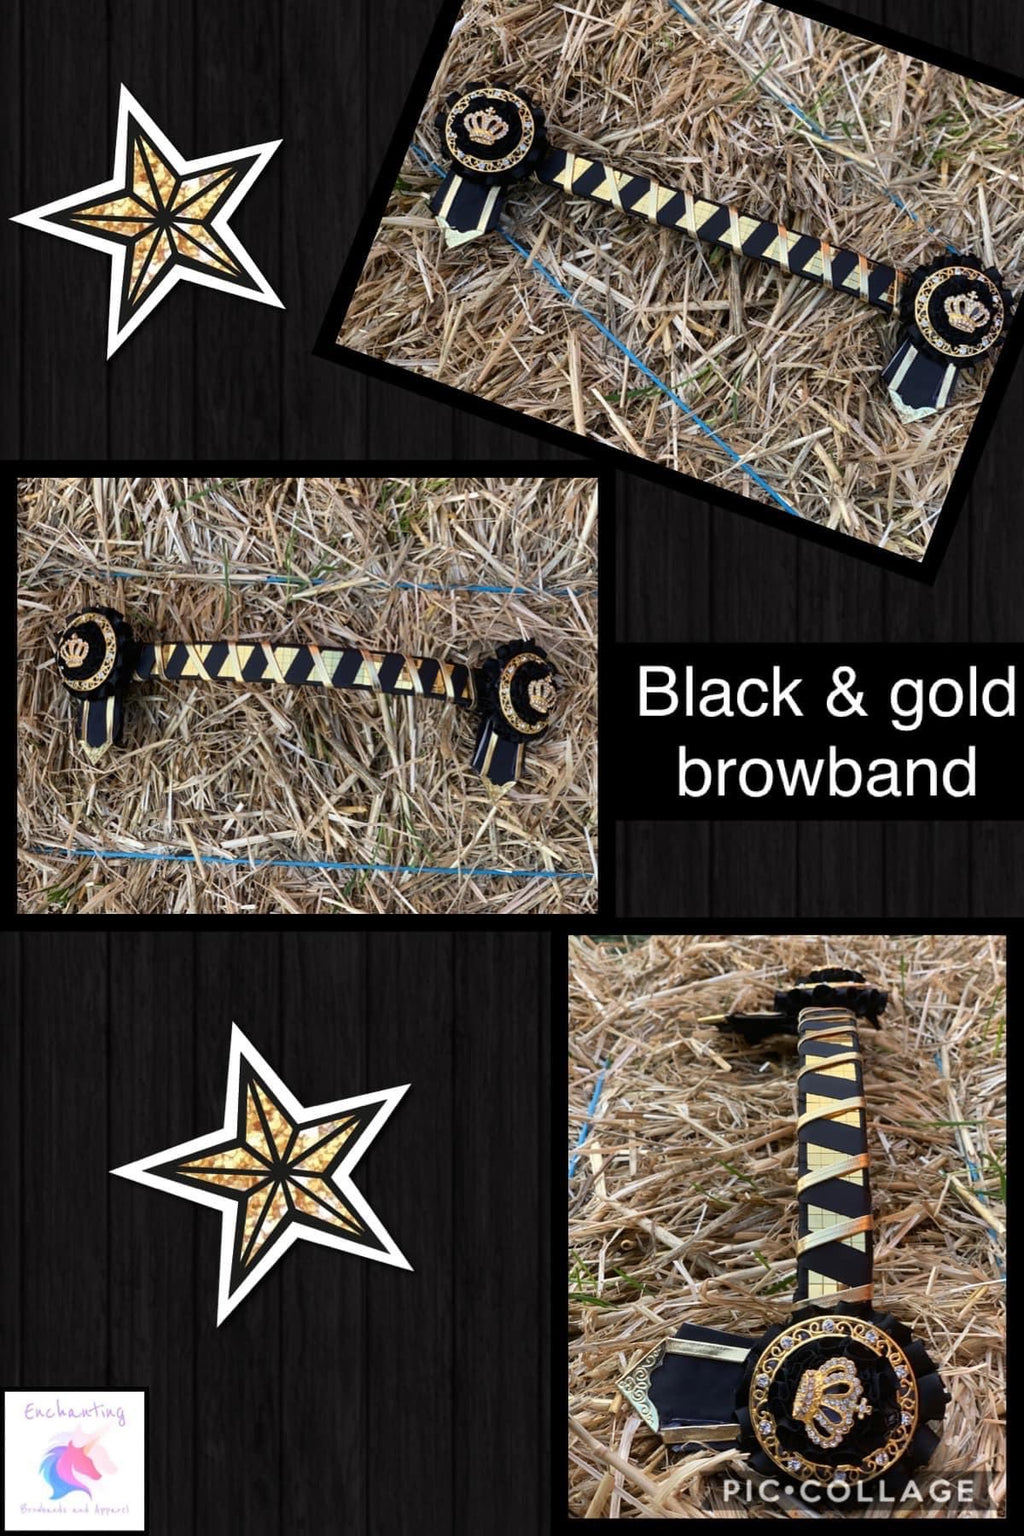 Black & gold browband